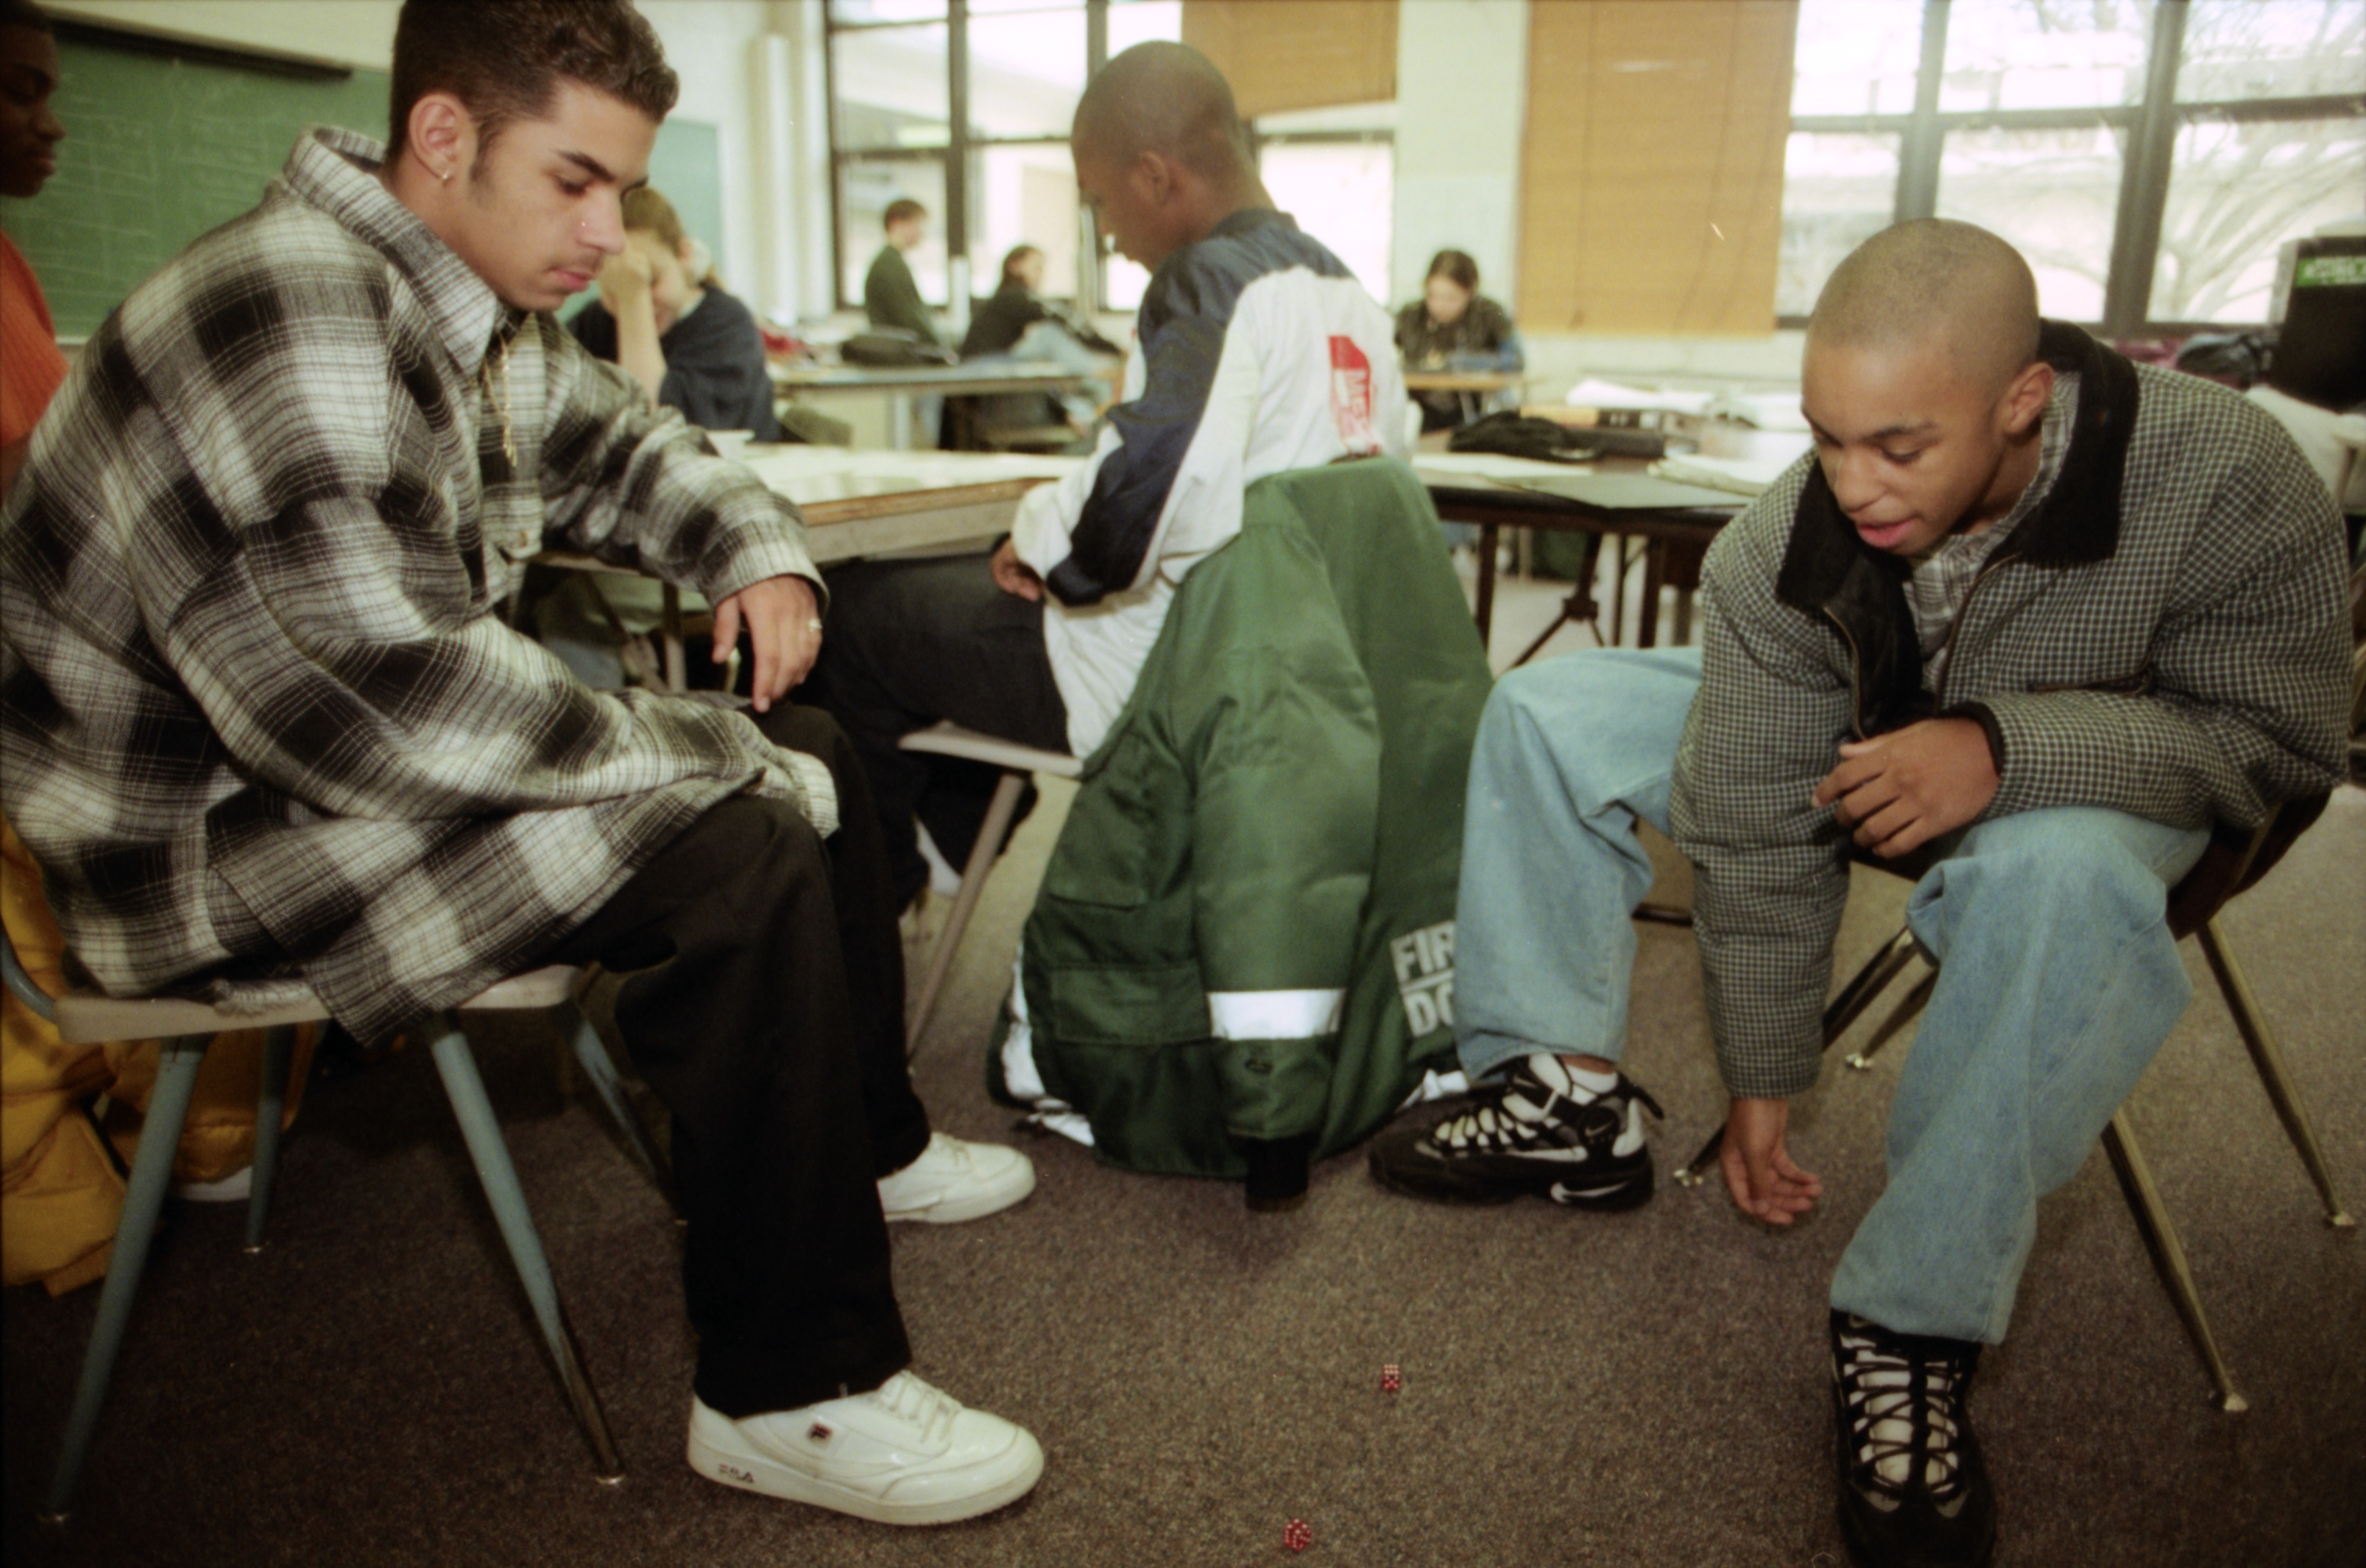 Mike Donahue and Justin Harper play dice at New School, March 1997 image